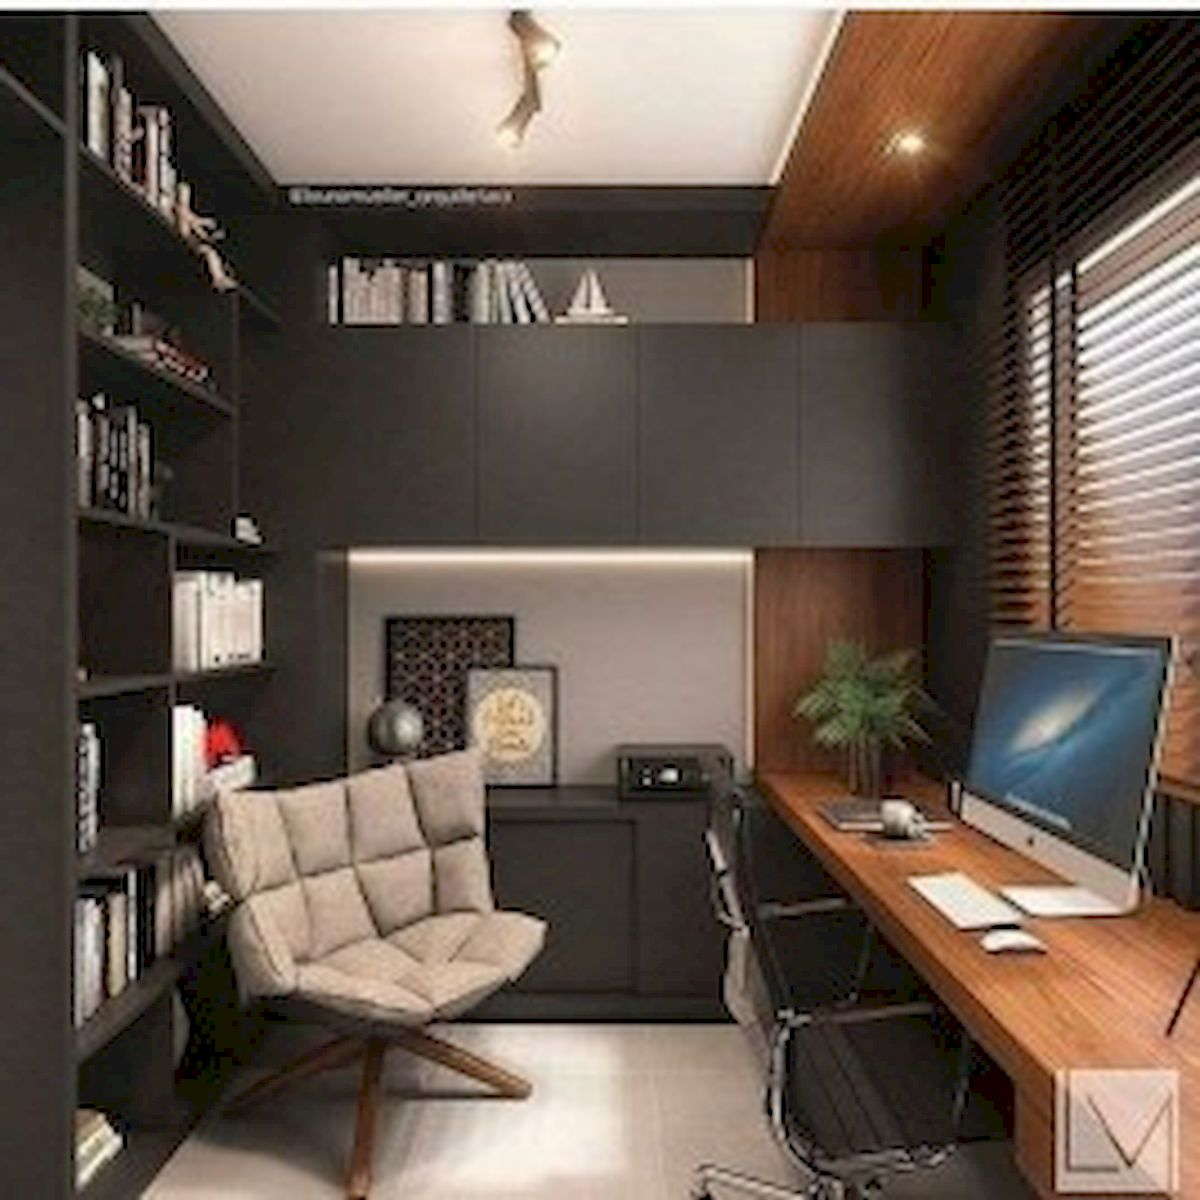 45 Adorable Home Office Decoration Ideas (41)